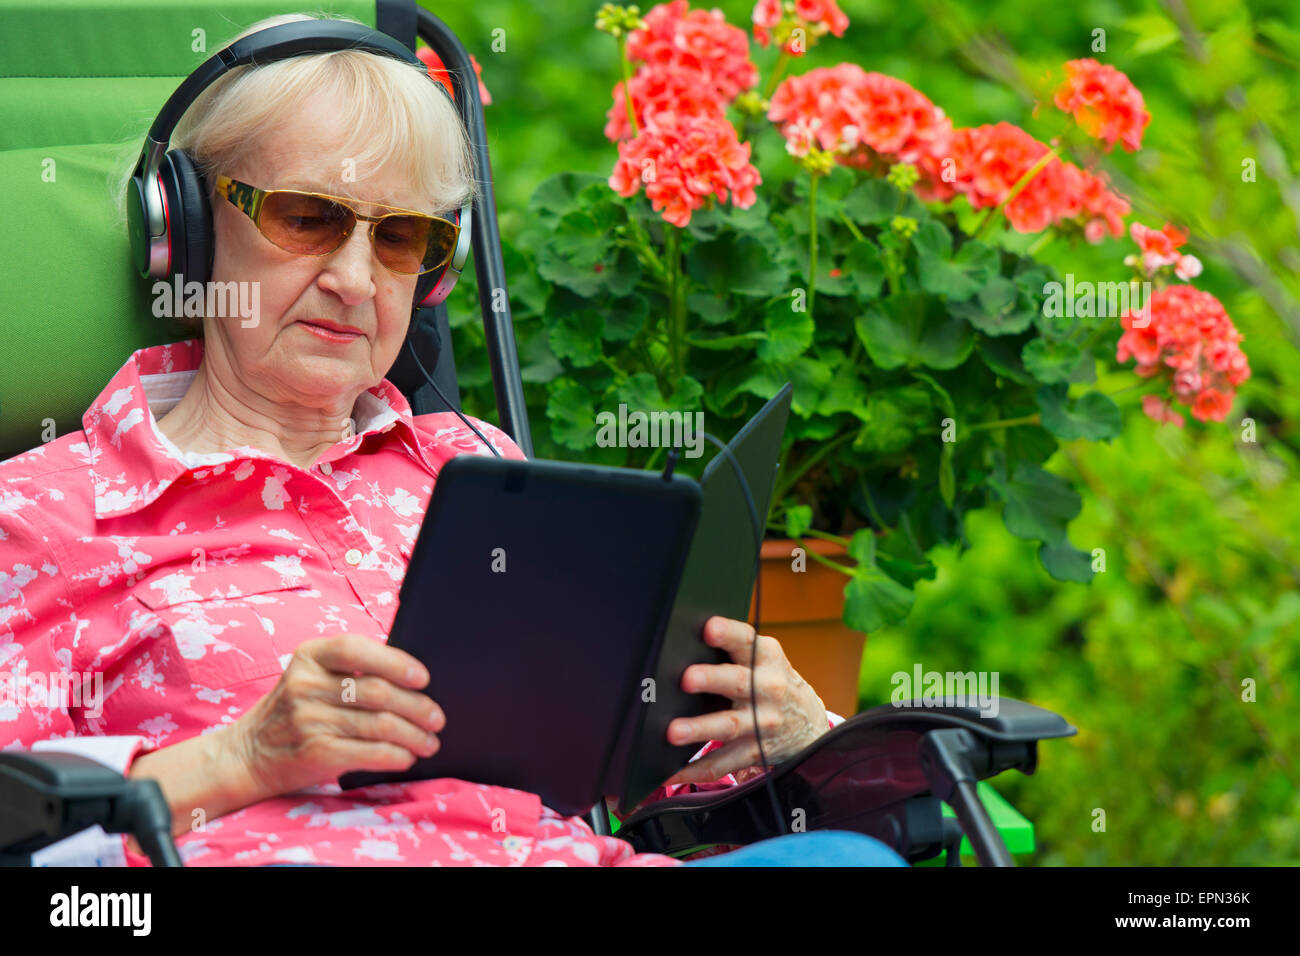 Woman with Headphones Reading Listening to Audio Books Content on Tablet or Kindle Device, ebook Reader - Stock Image